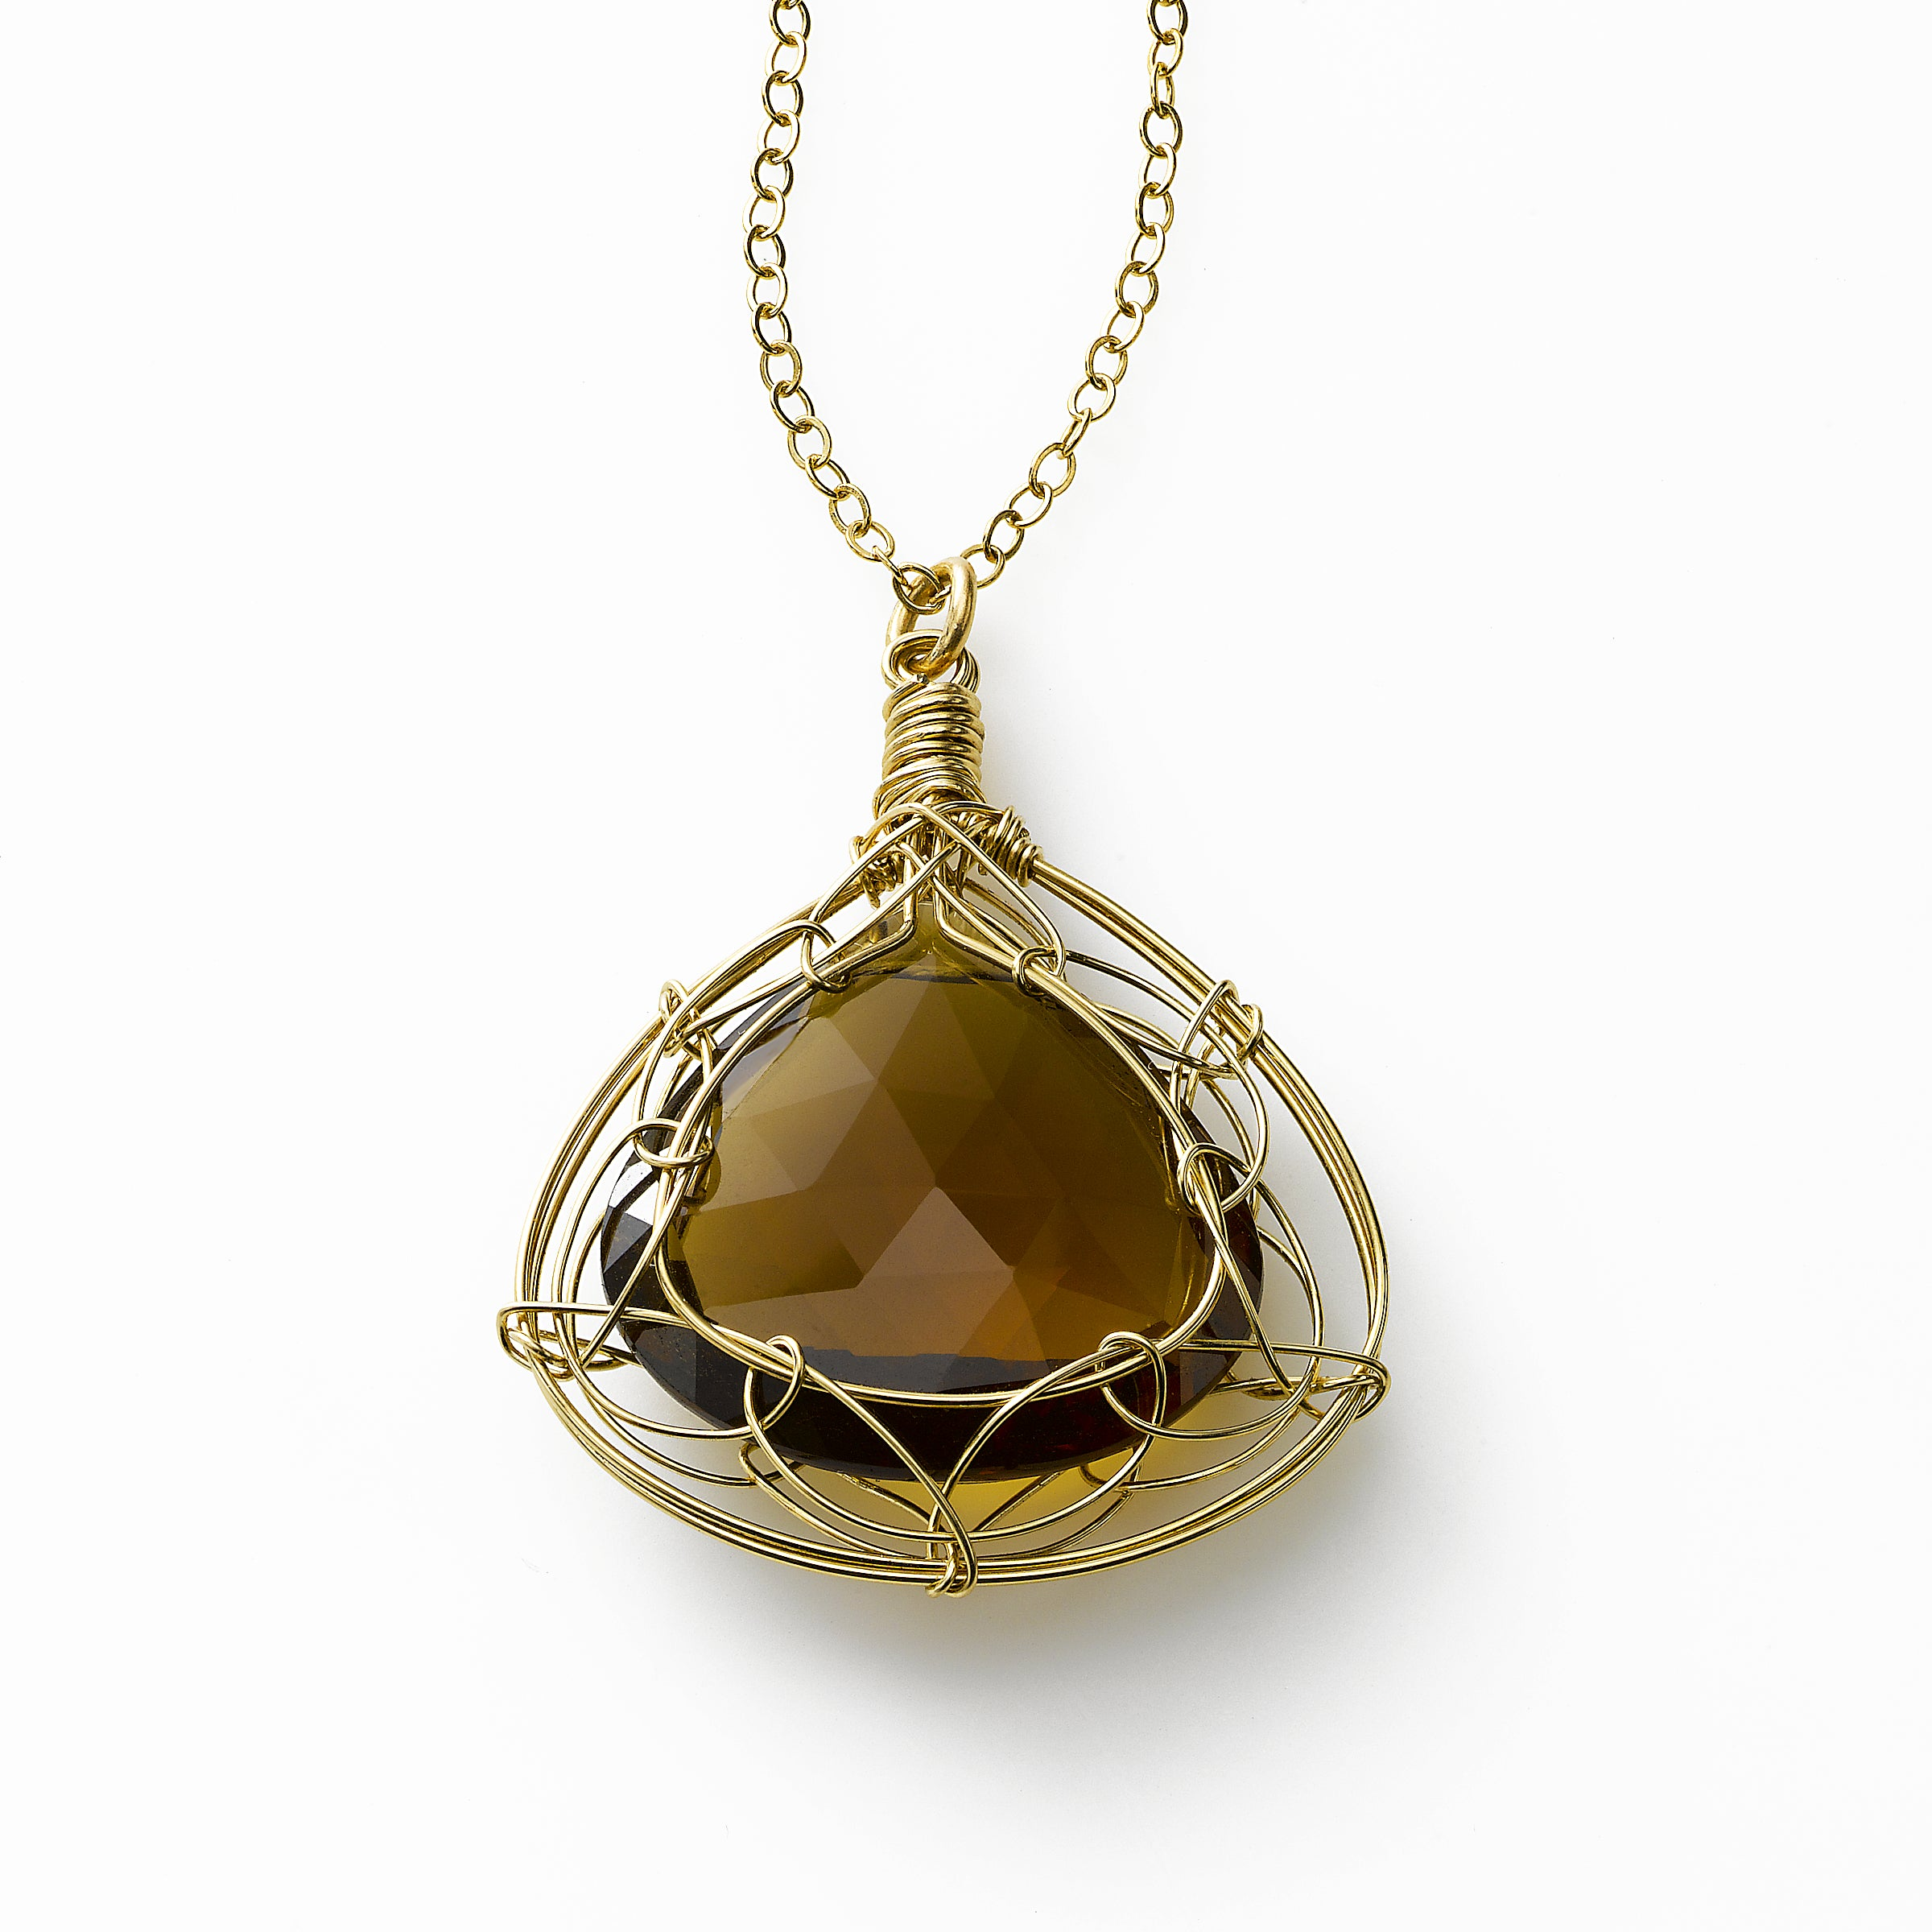 Whiskey Quartz Pendant by Misha of New York, 14K Gold Filled